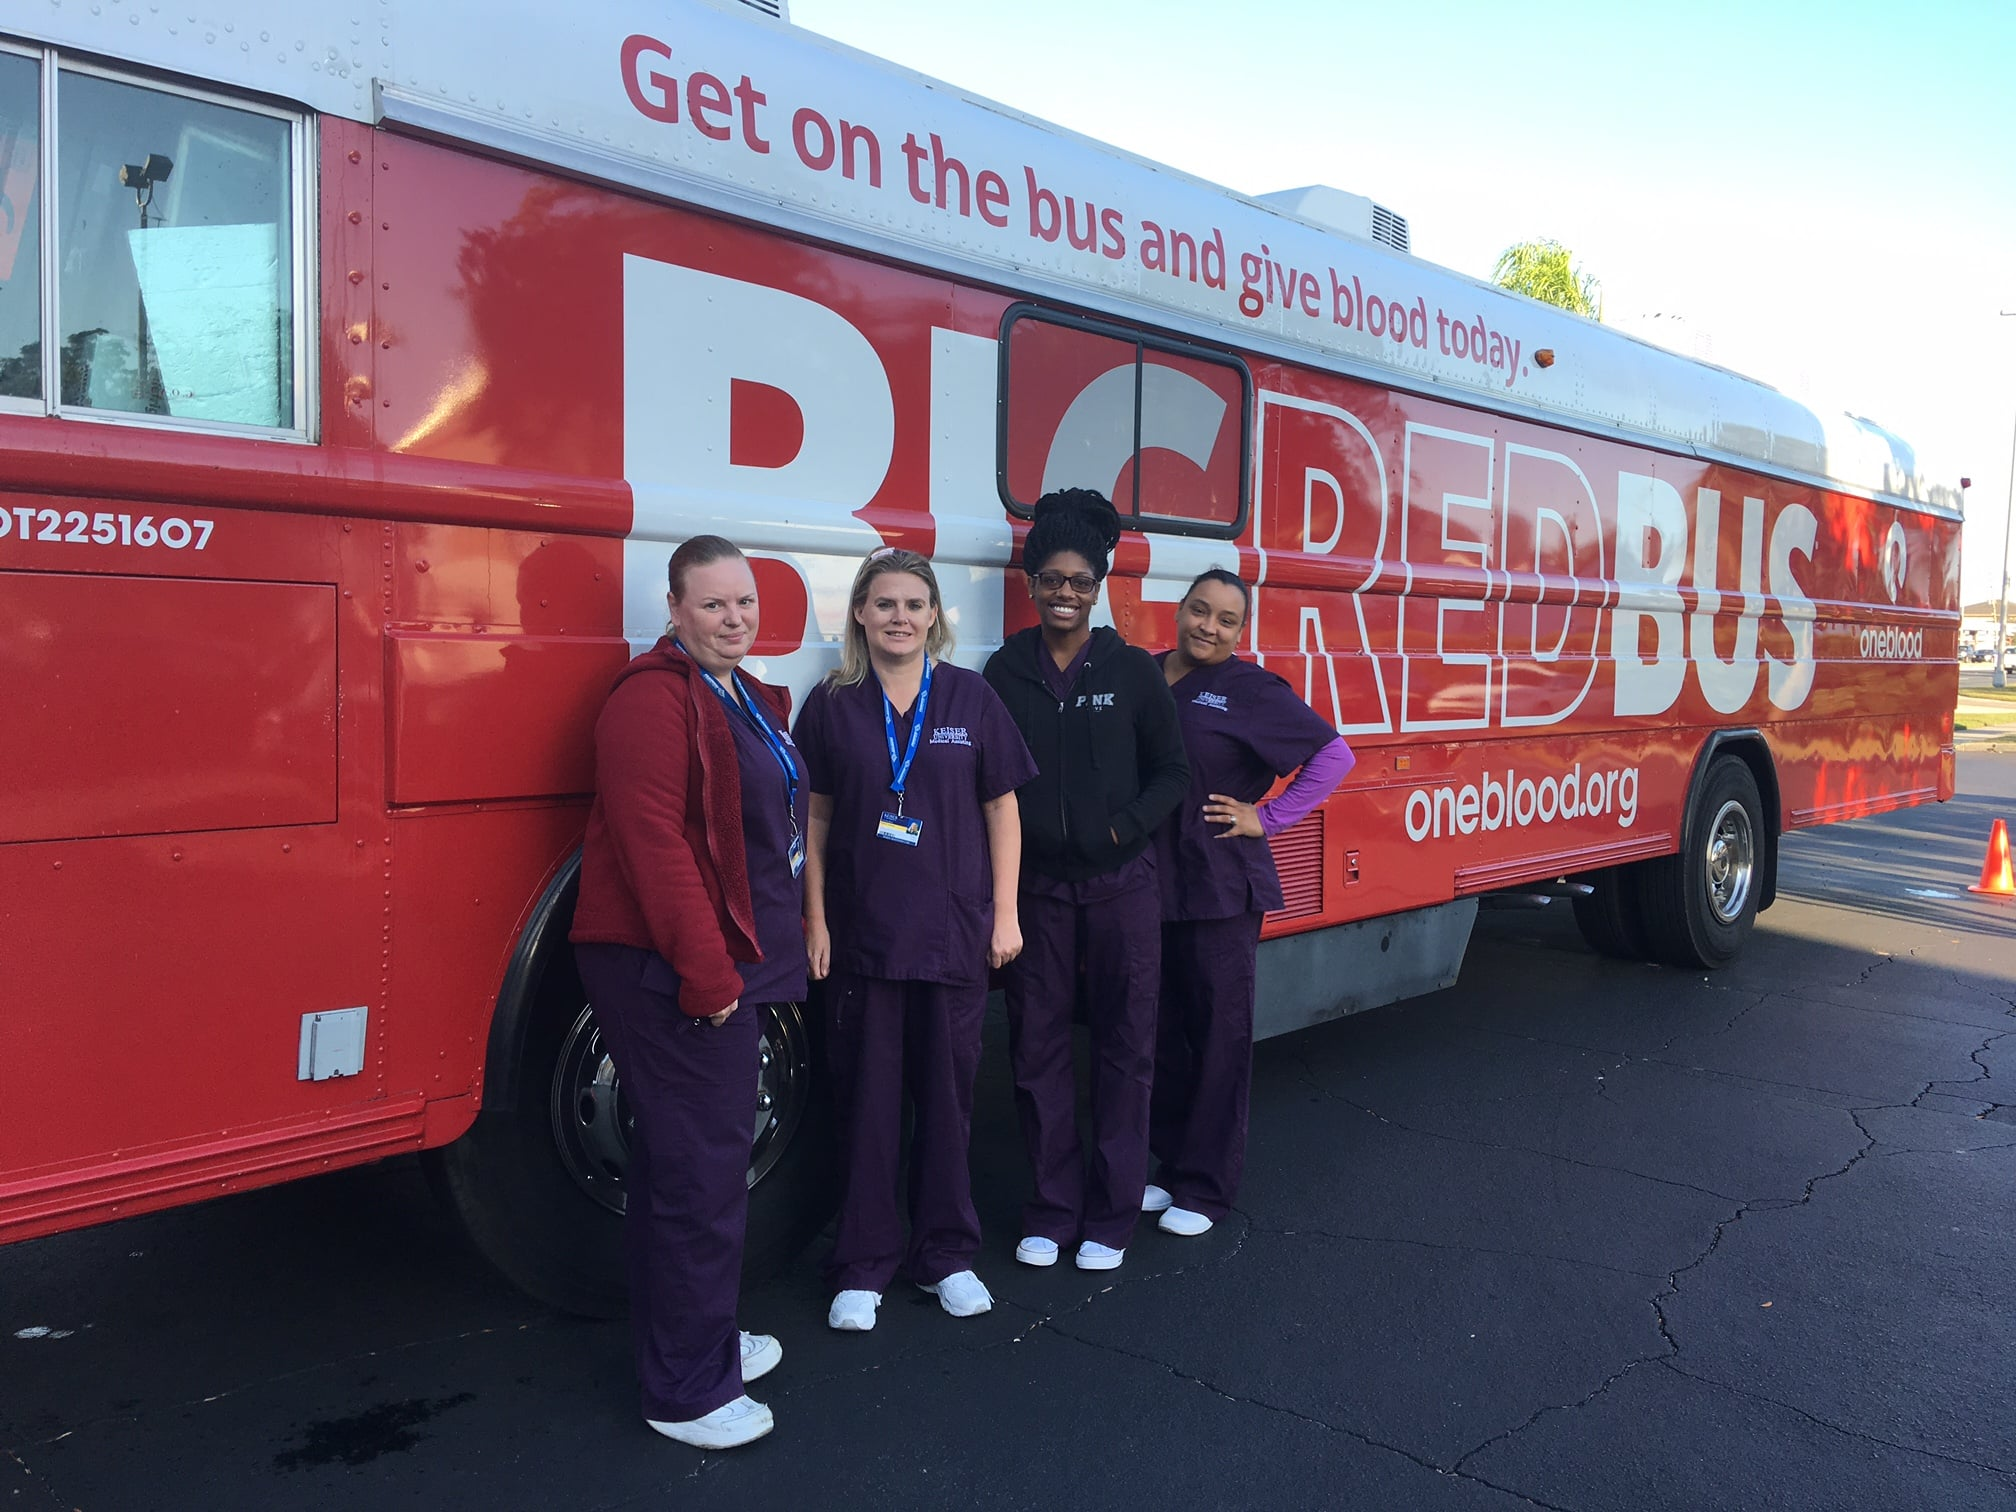 New Port Richey Holds a Blood Drive